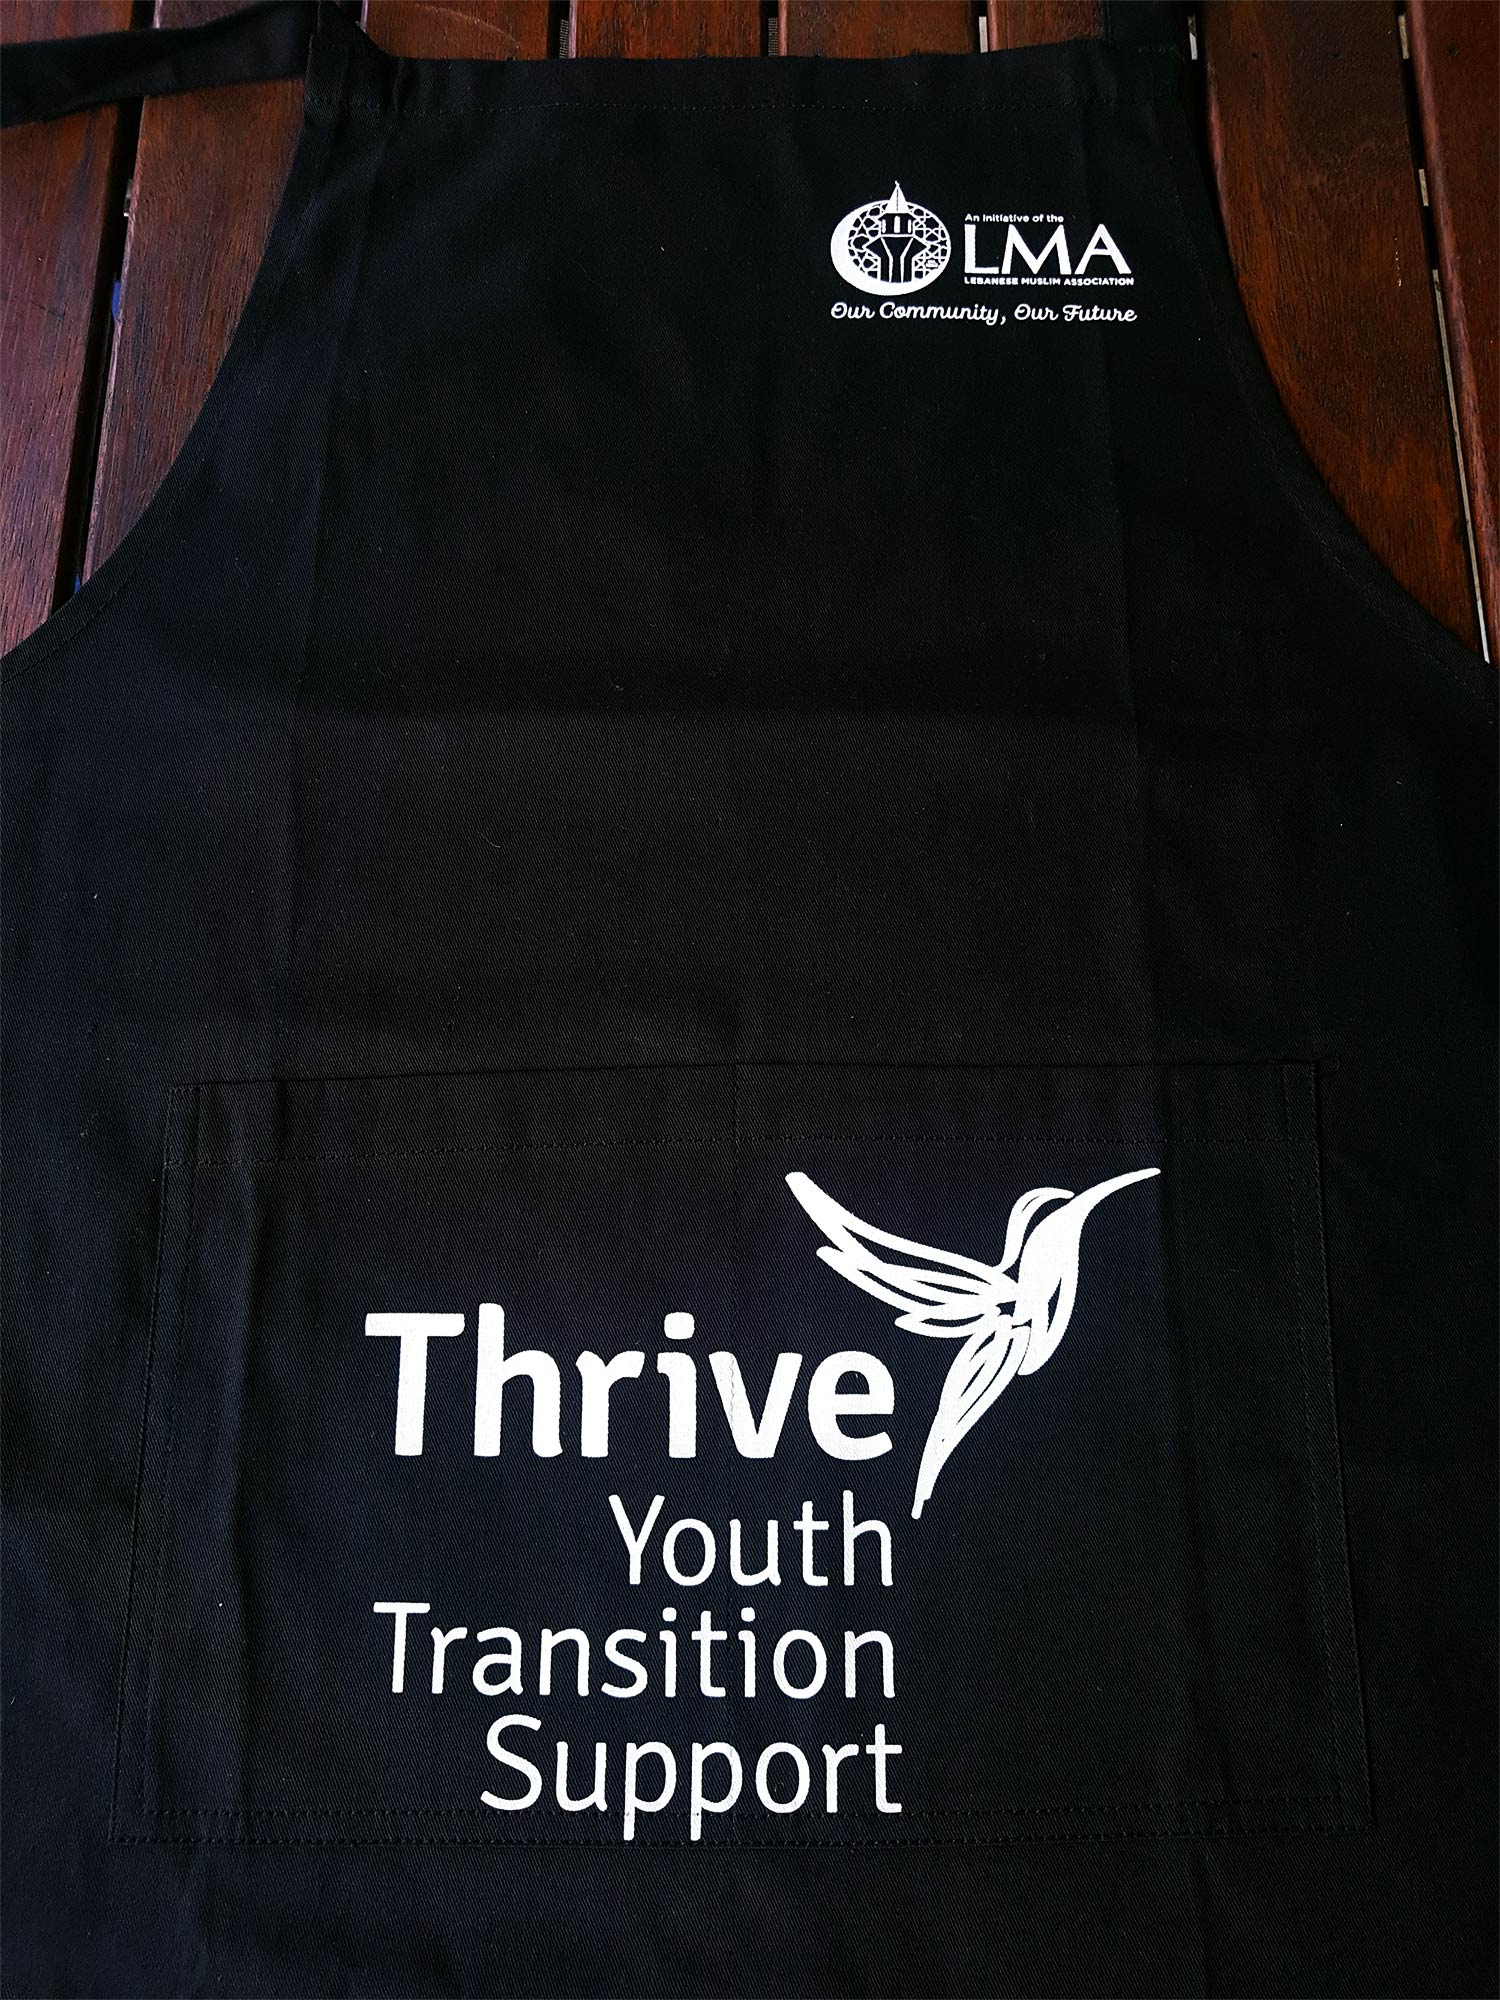 Thrive - youth transition support